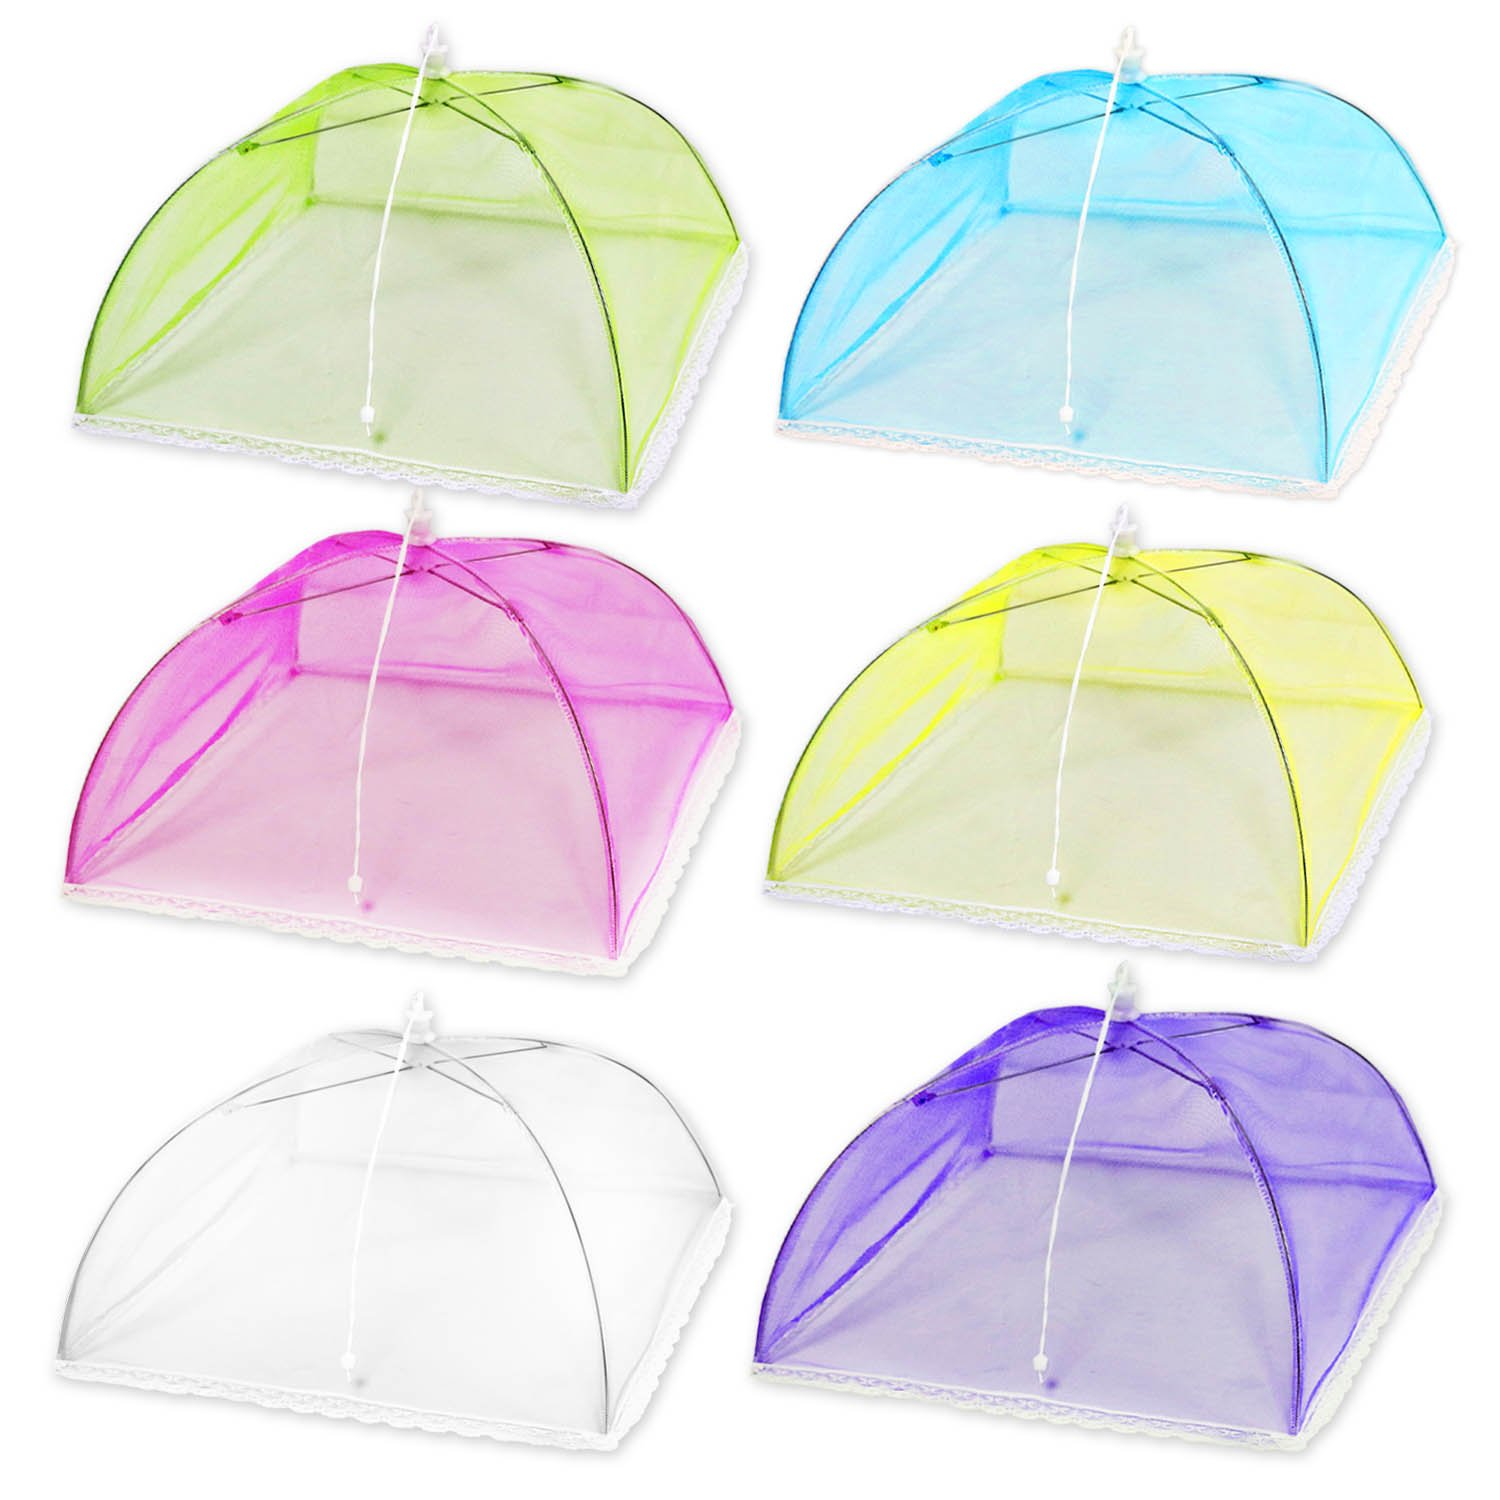 (6 Pack) Esfun 17'' Colored Mesh Screen Food Cover Tents for Outdoors, Reusable and Collapsible Picnic Food Net Cover Umbrella Protect Your Food and Fruit From Flies,Mosquitoes and Bugs